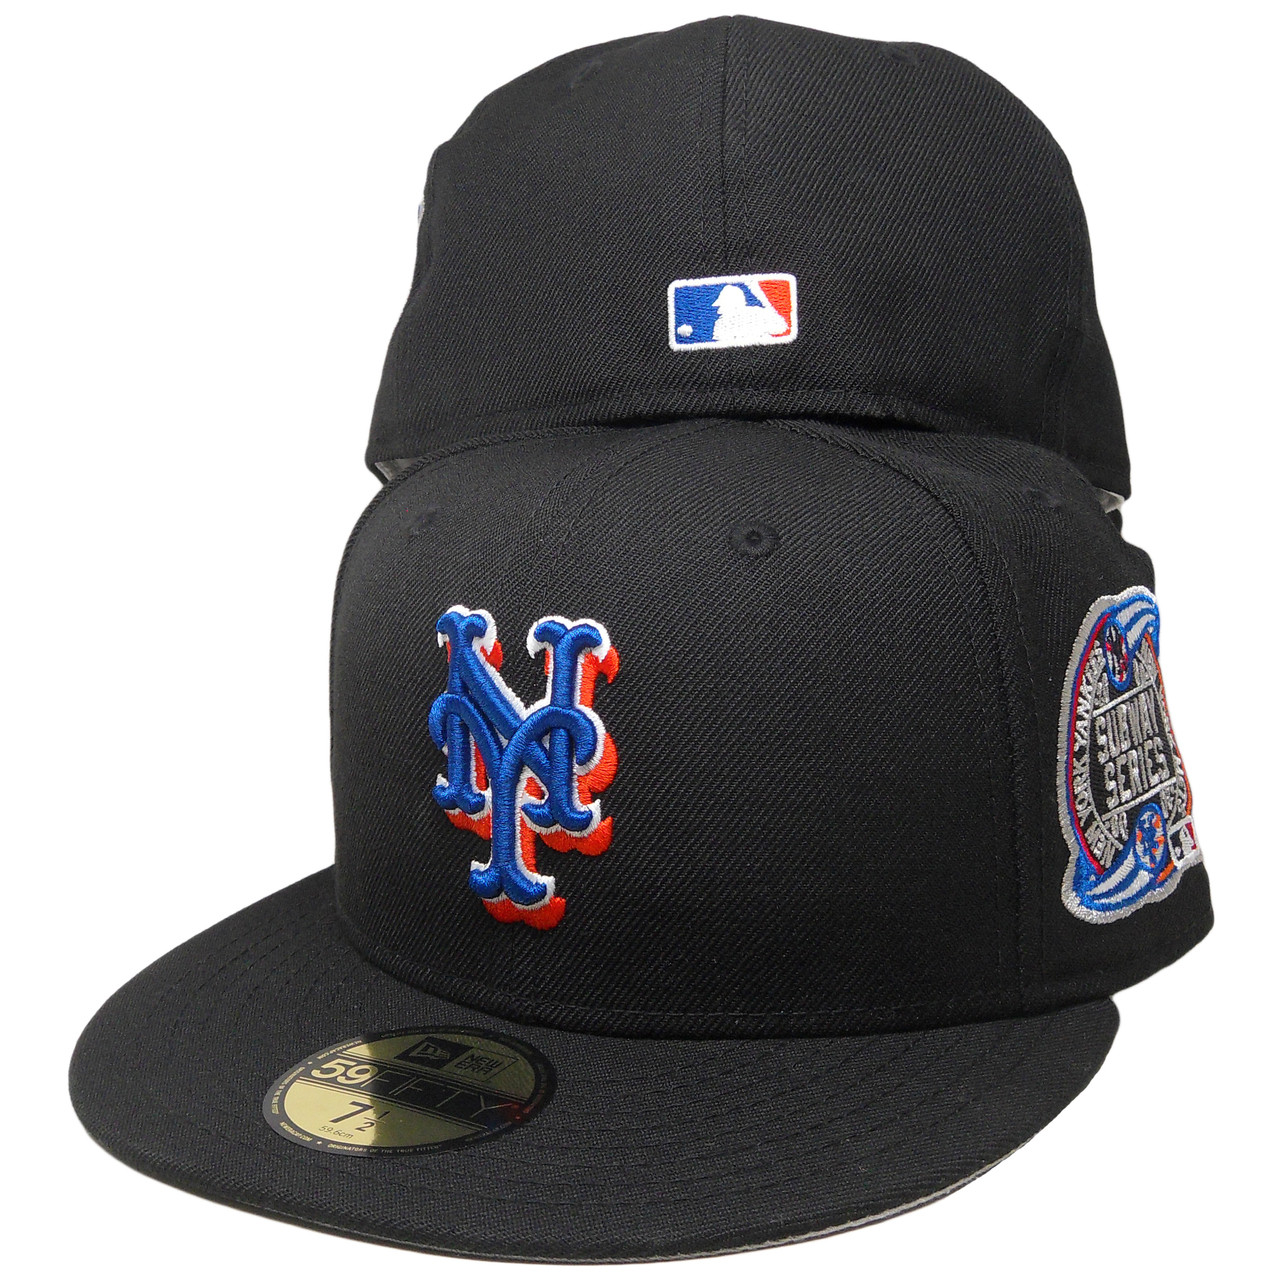 New Era Black Royal Blue New York Mets 2000 Subway Series Side Patch Fitted hat